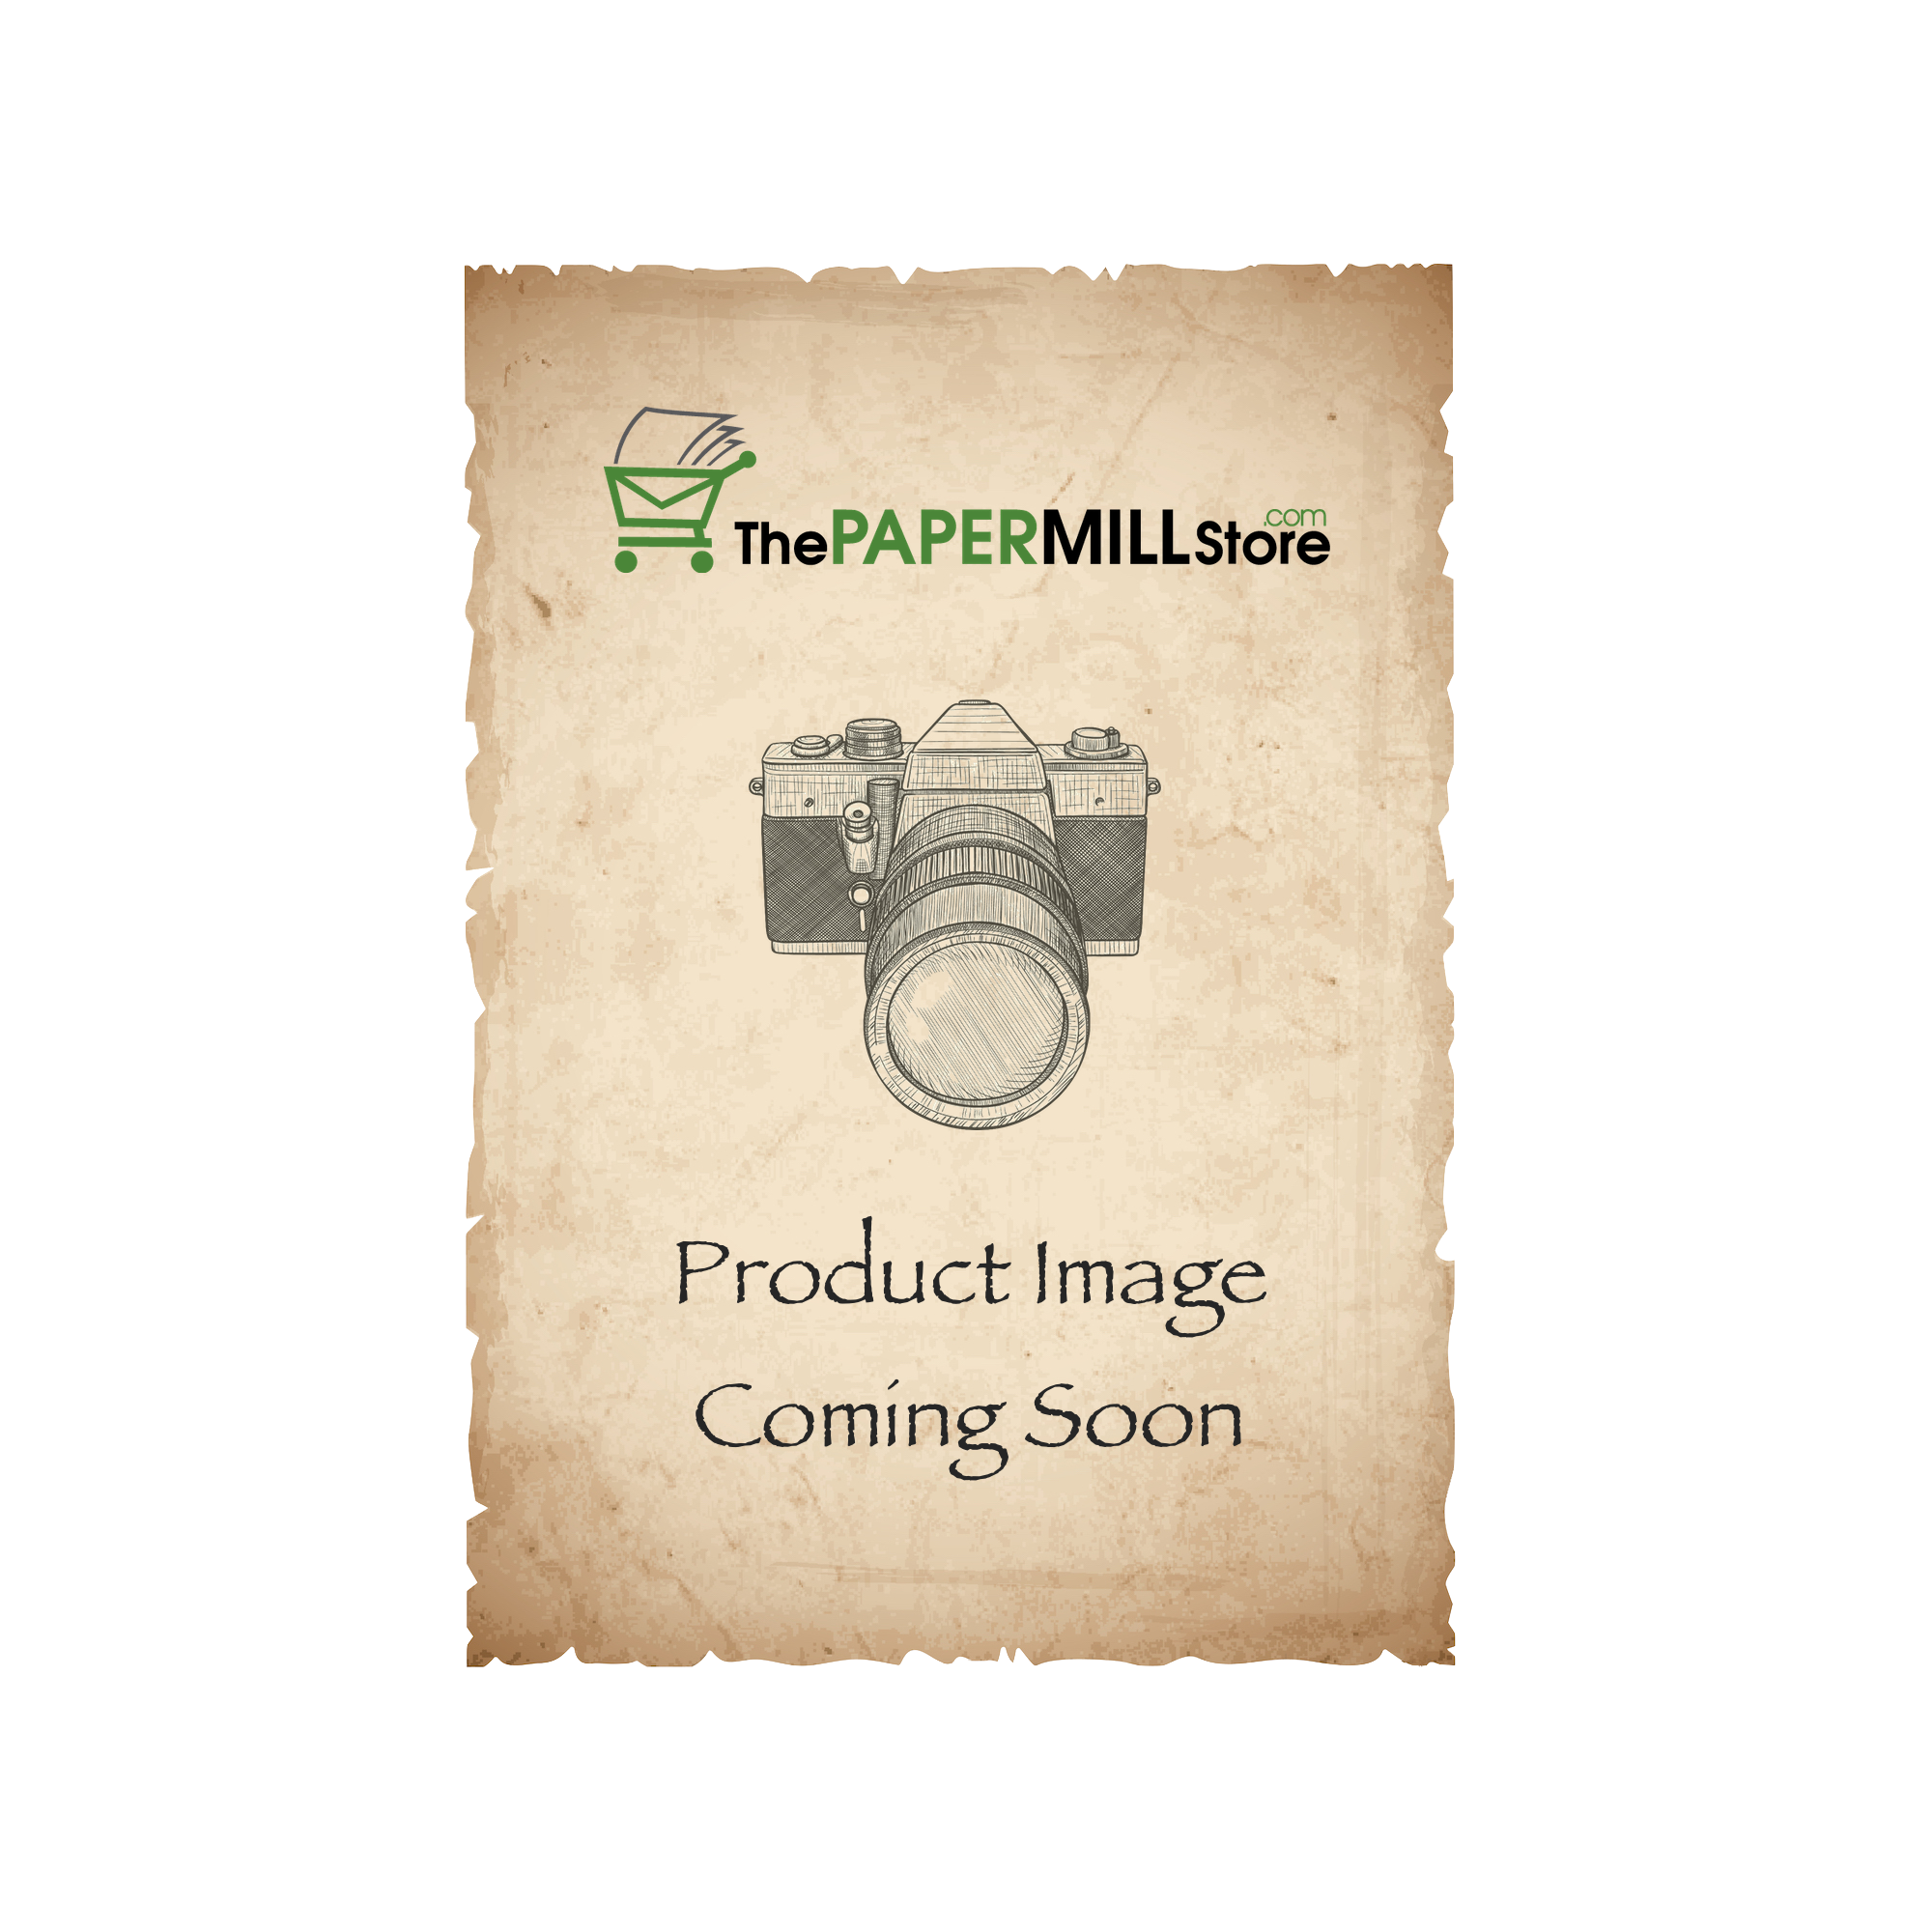 Loop Inxwell i-Tone Eco White Card Stock - 19 x 13 in 80 lb Cover Vellum  100% Recycled 250 per Package